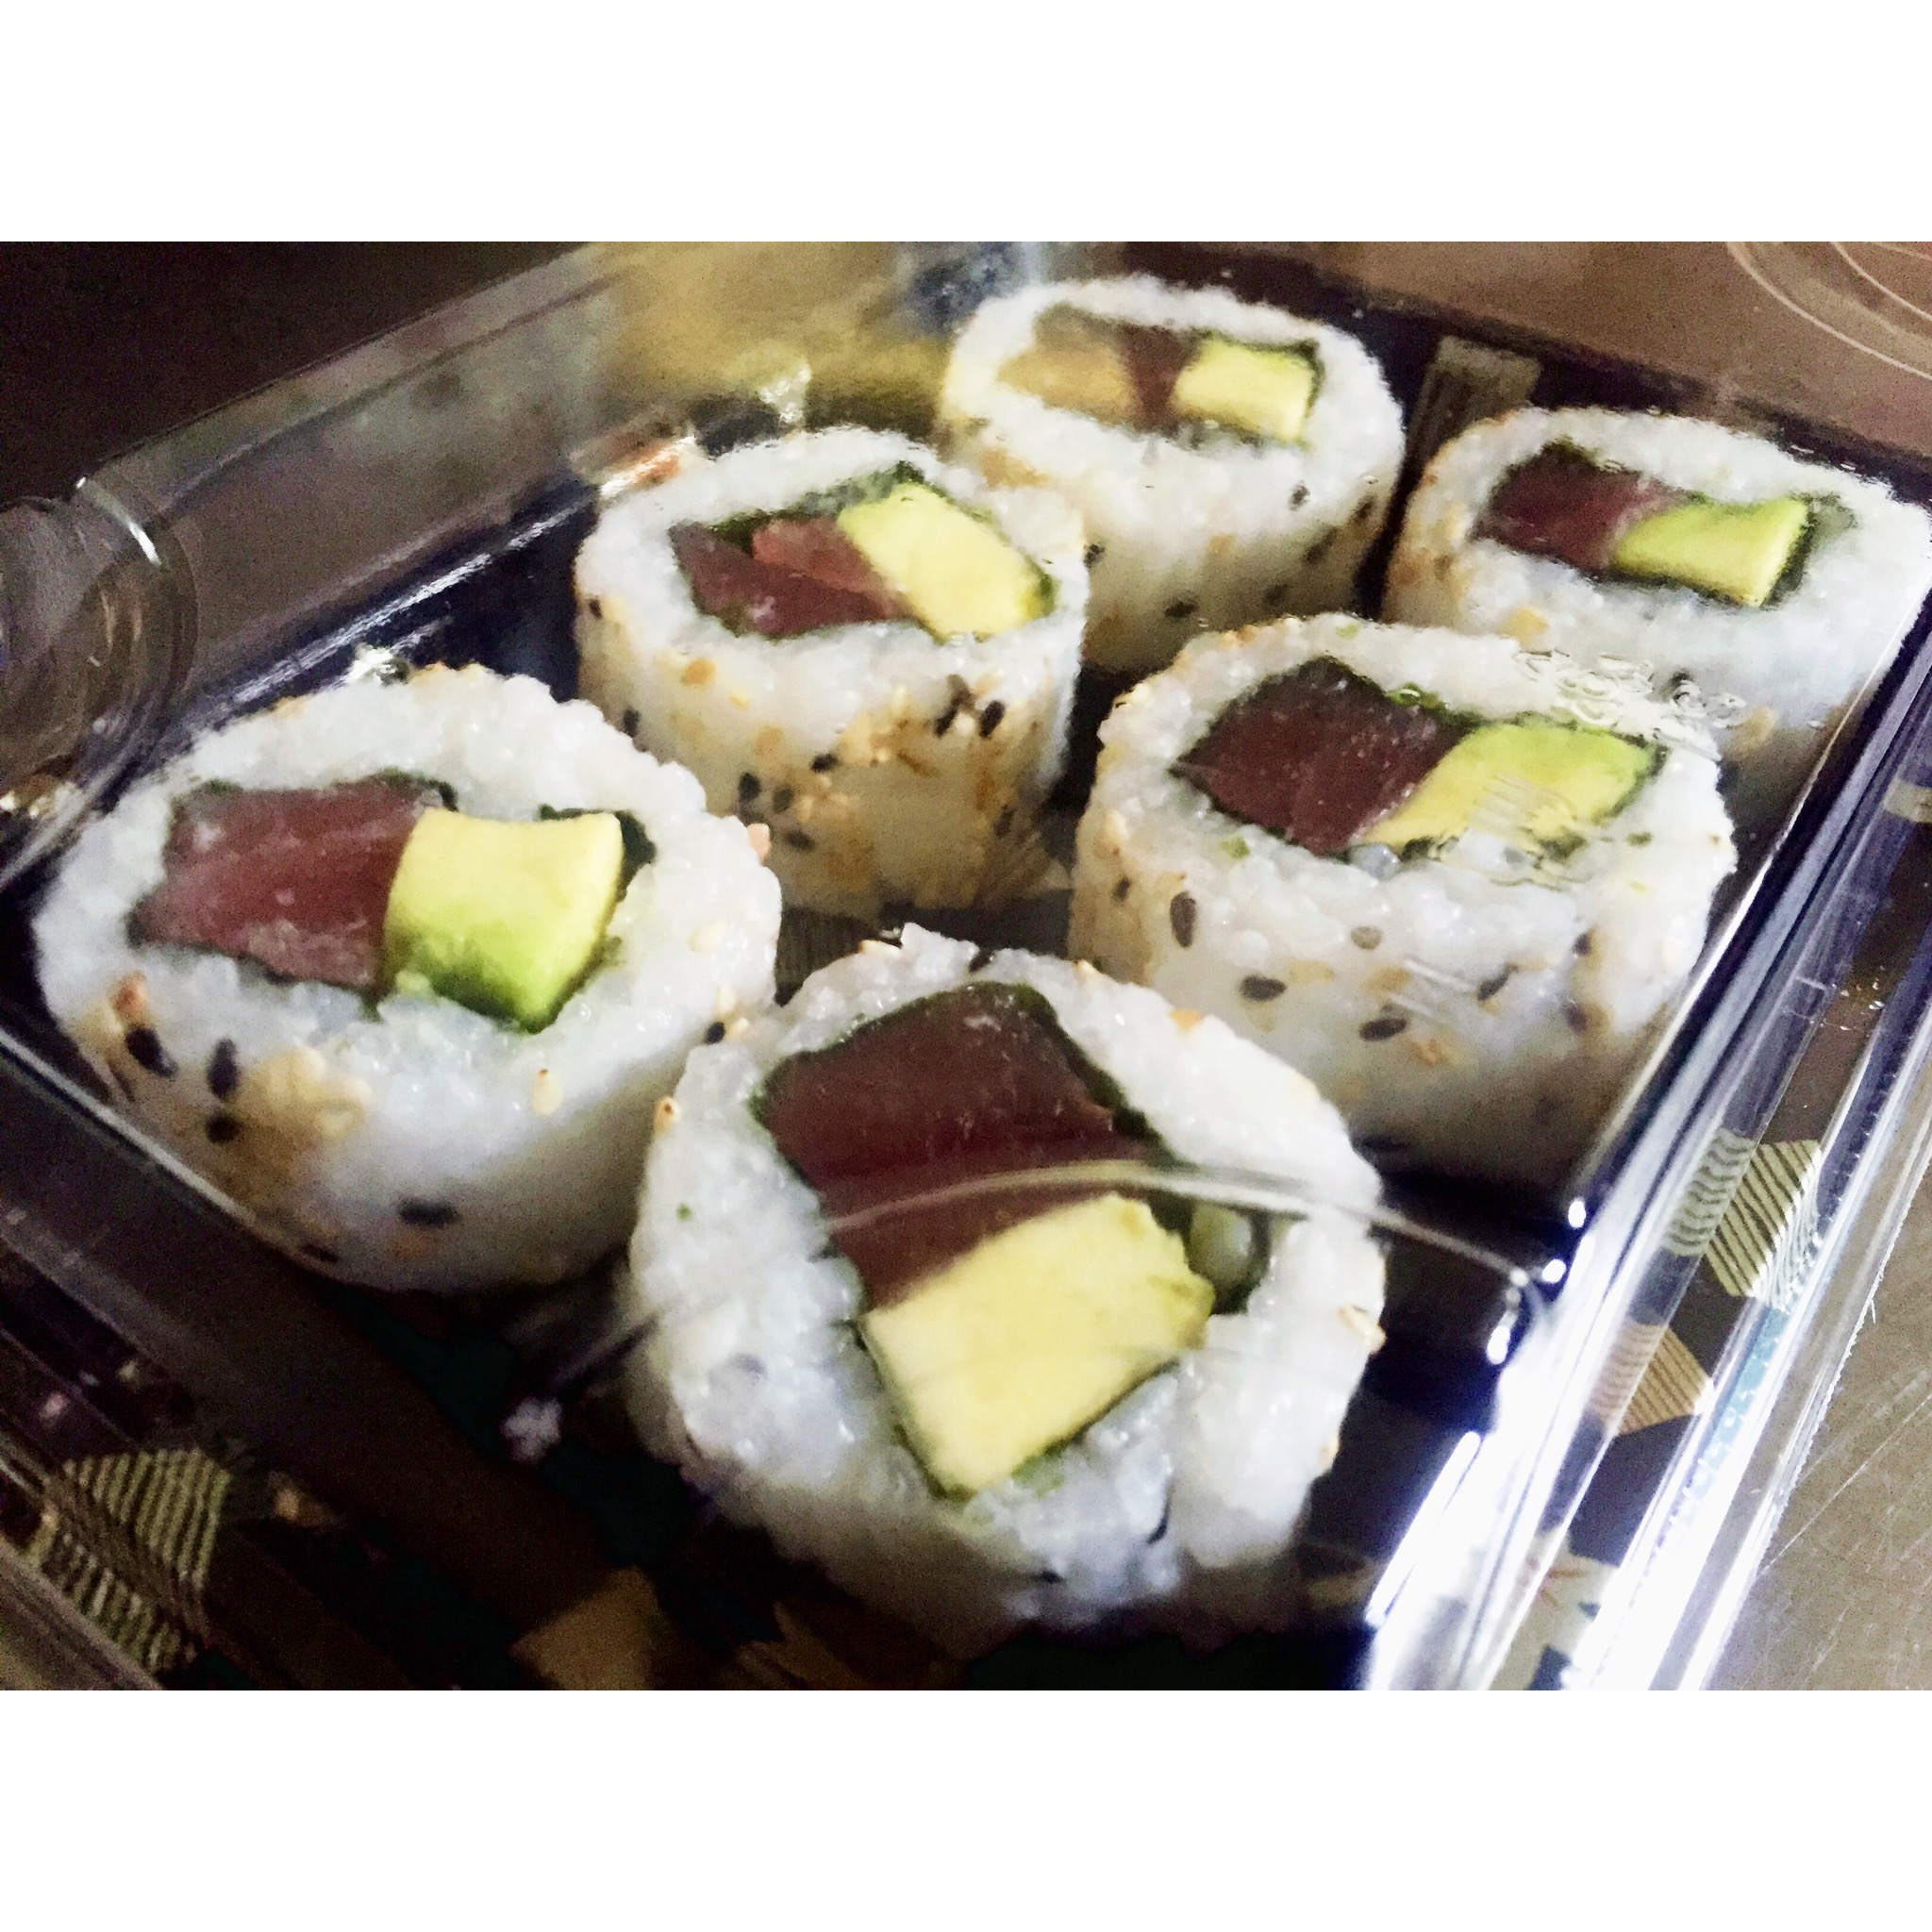 Tuna & Avocado Inside Out Rolls - £7